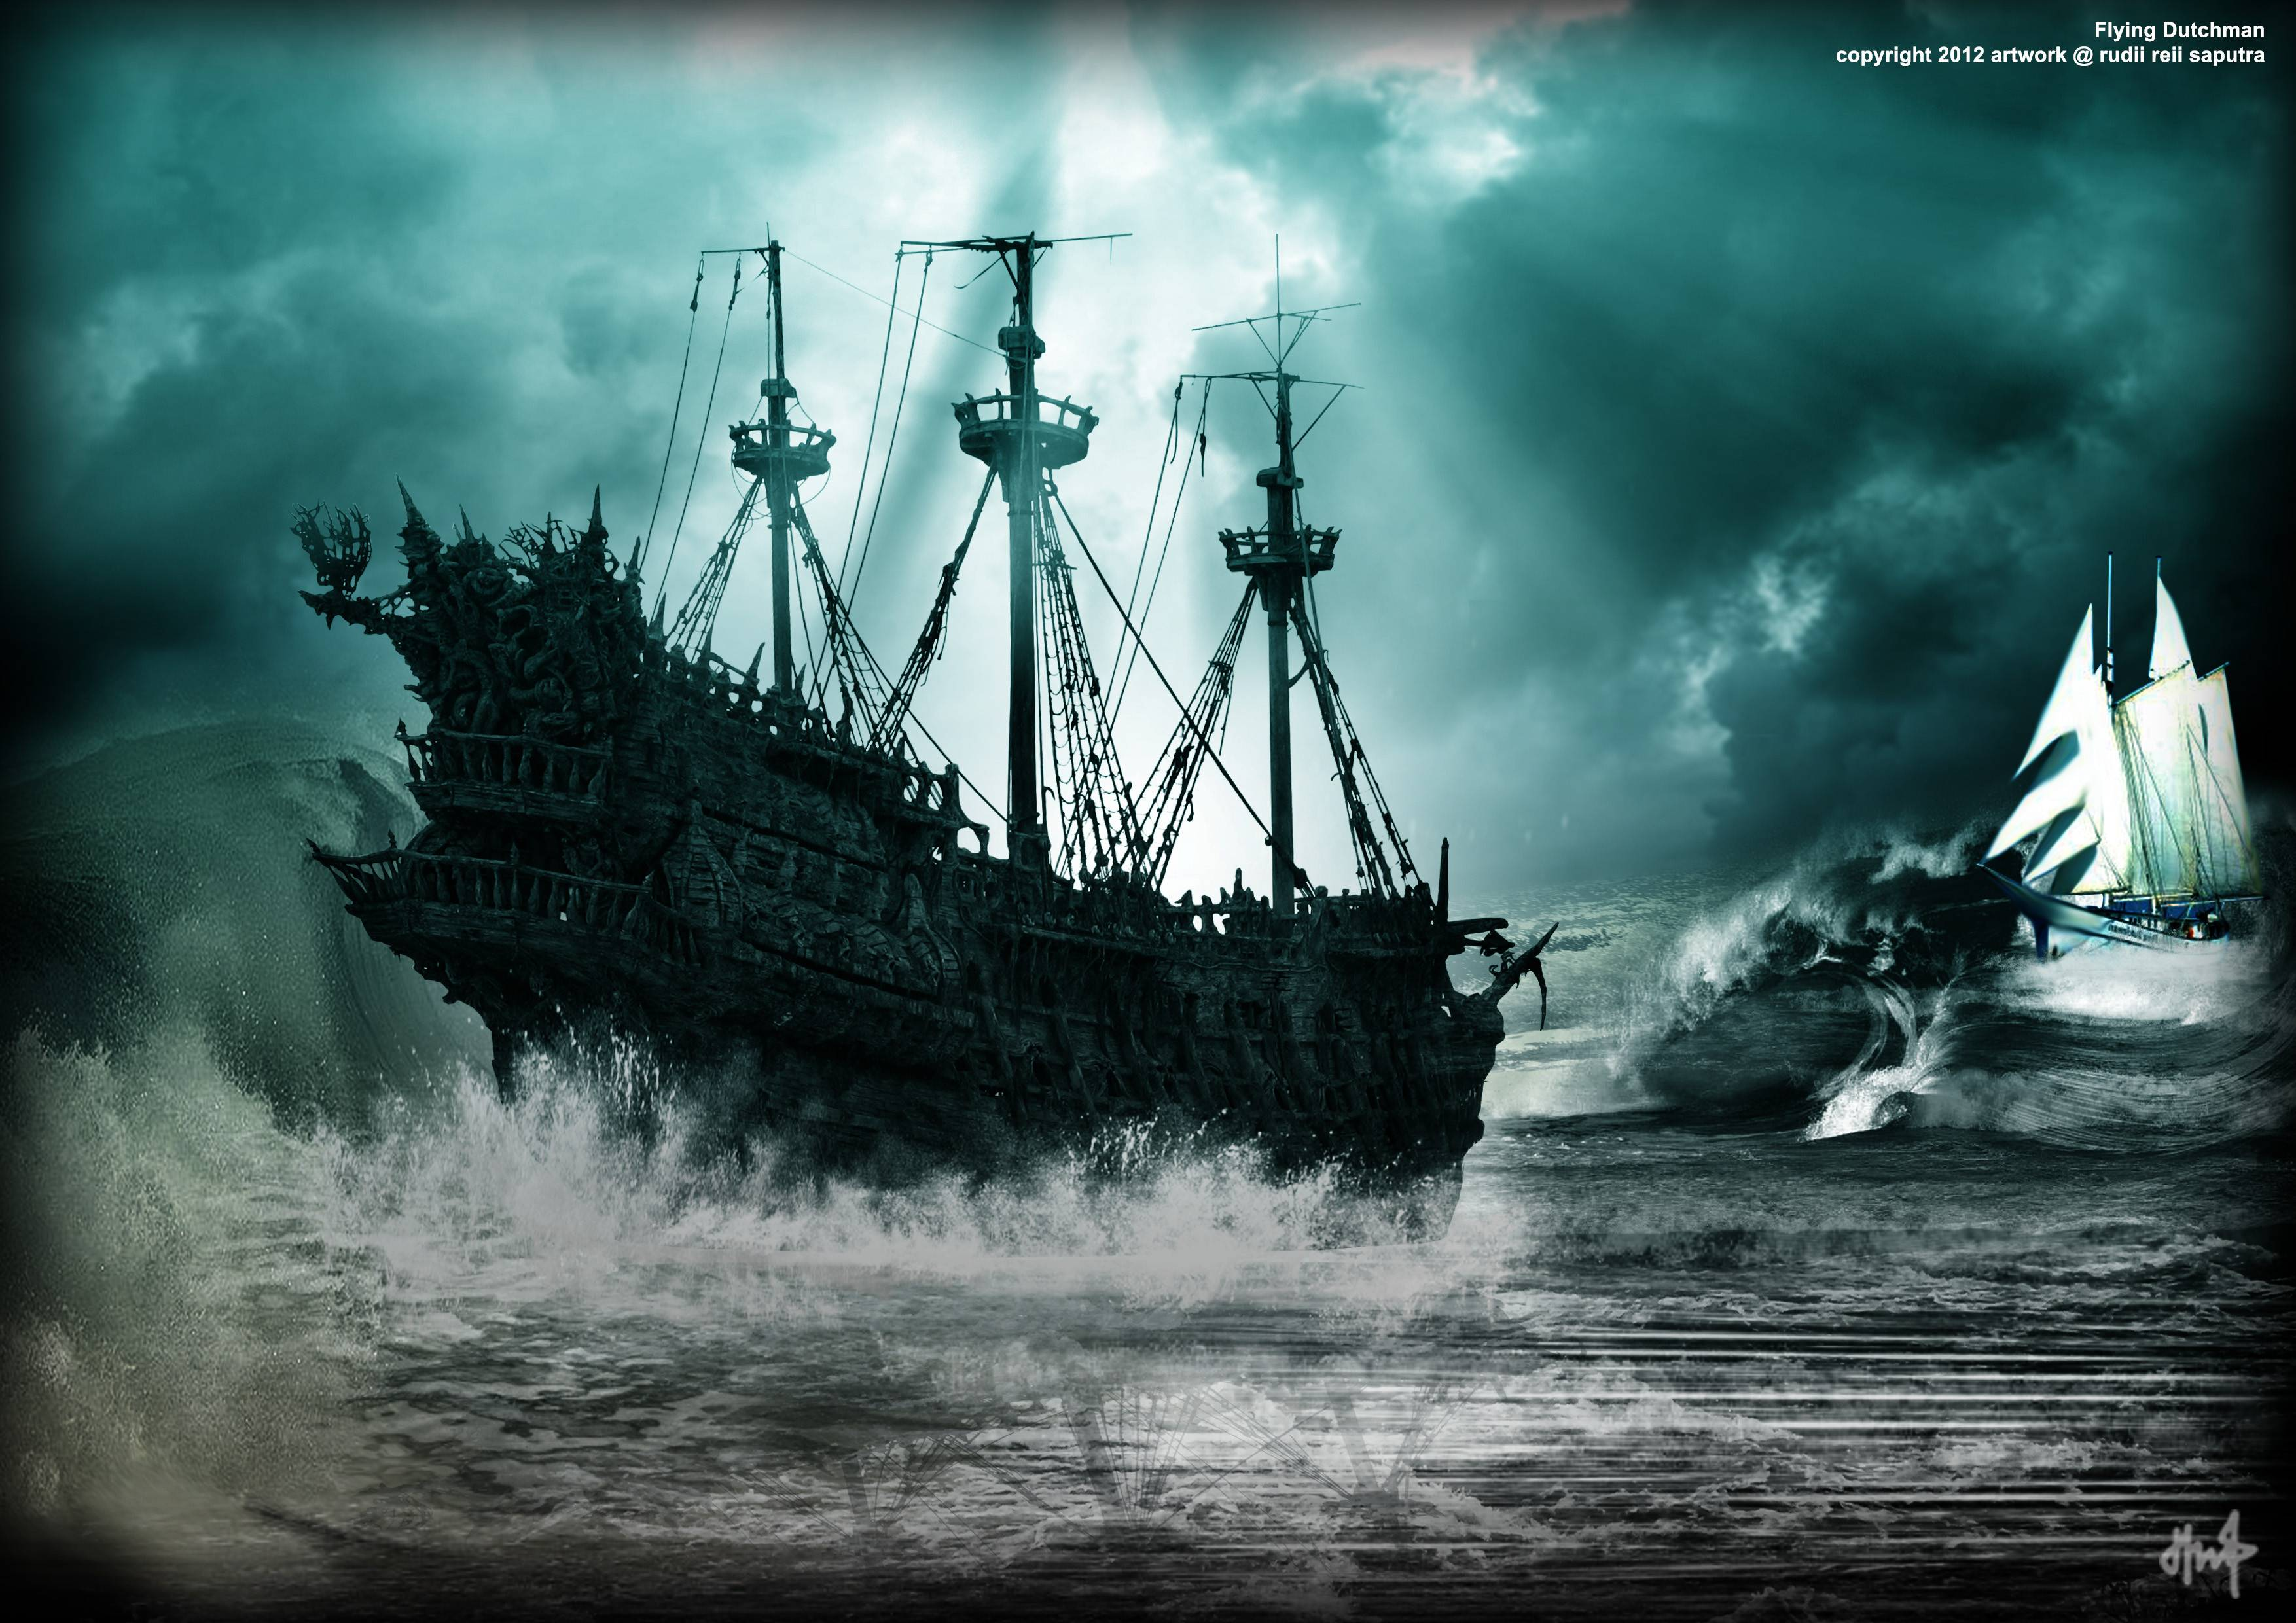 Flying Dutchman Pirates Of The Caribbean 1384913 Hd